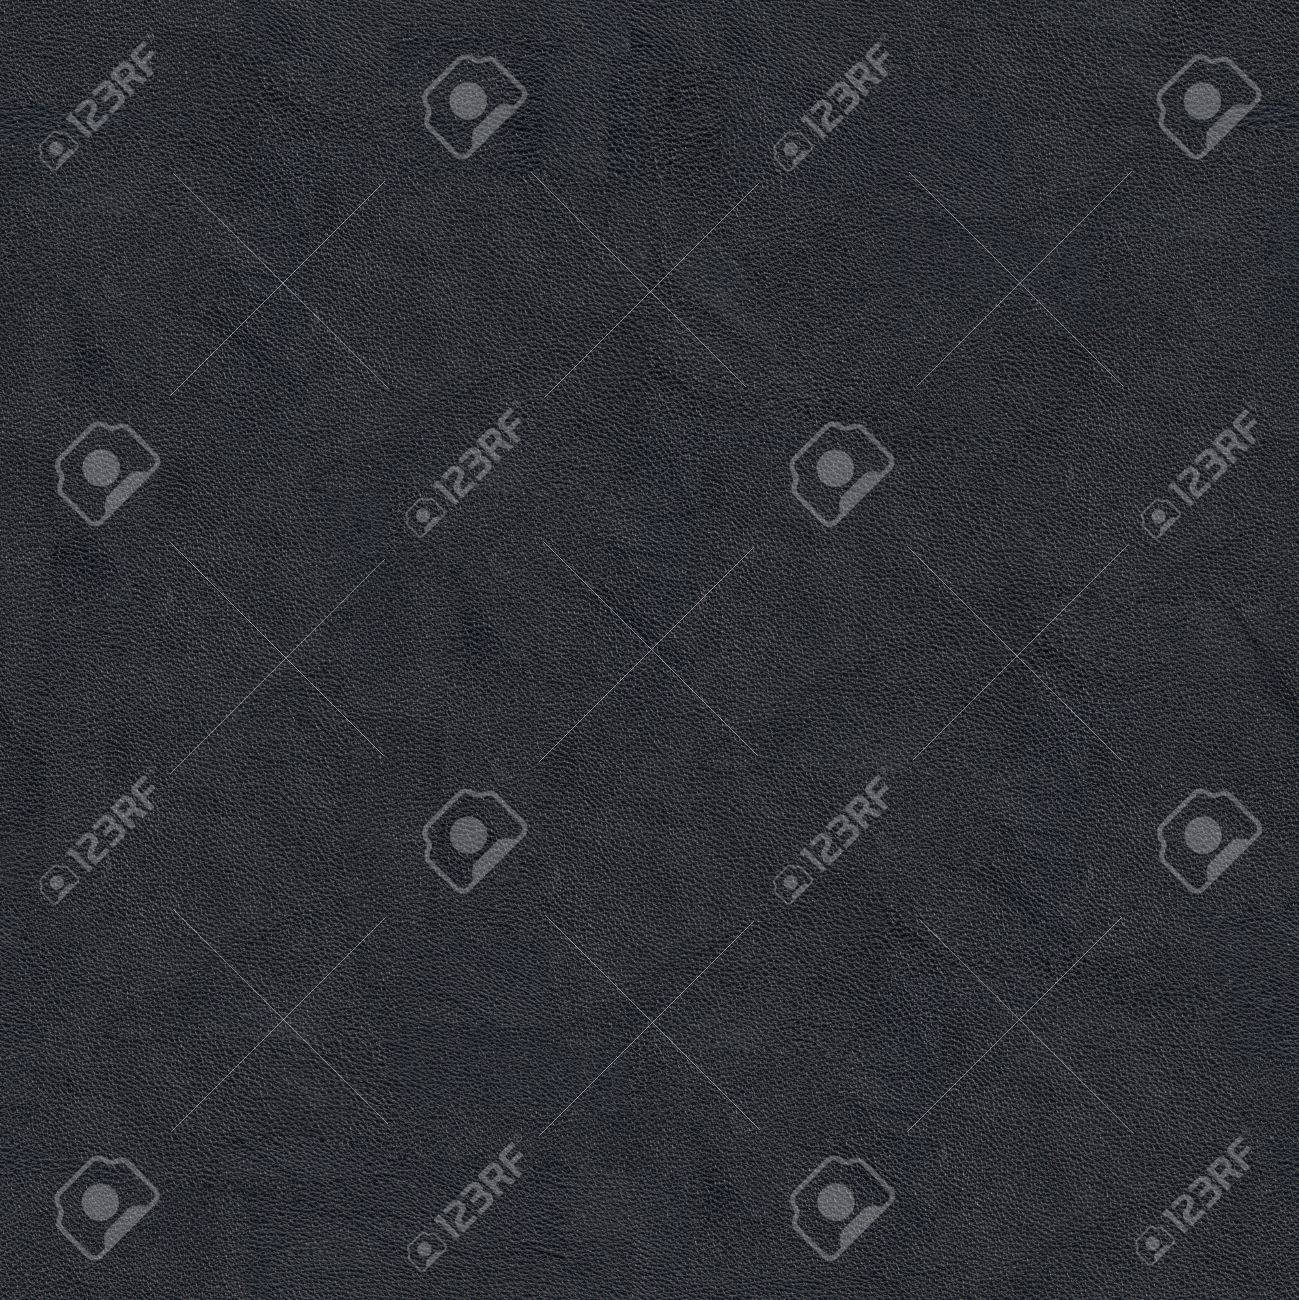 Leather Closeup of Seamless Black Leather Texture 0015 It